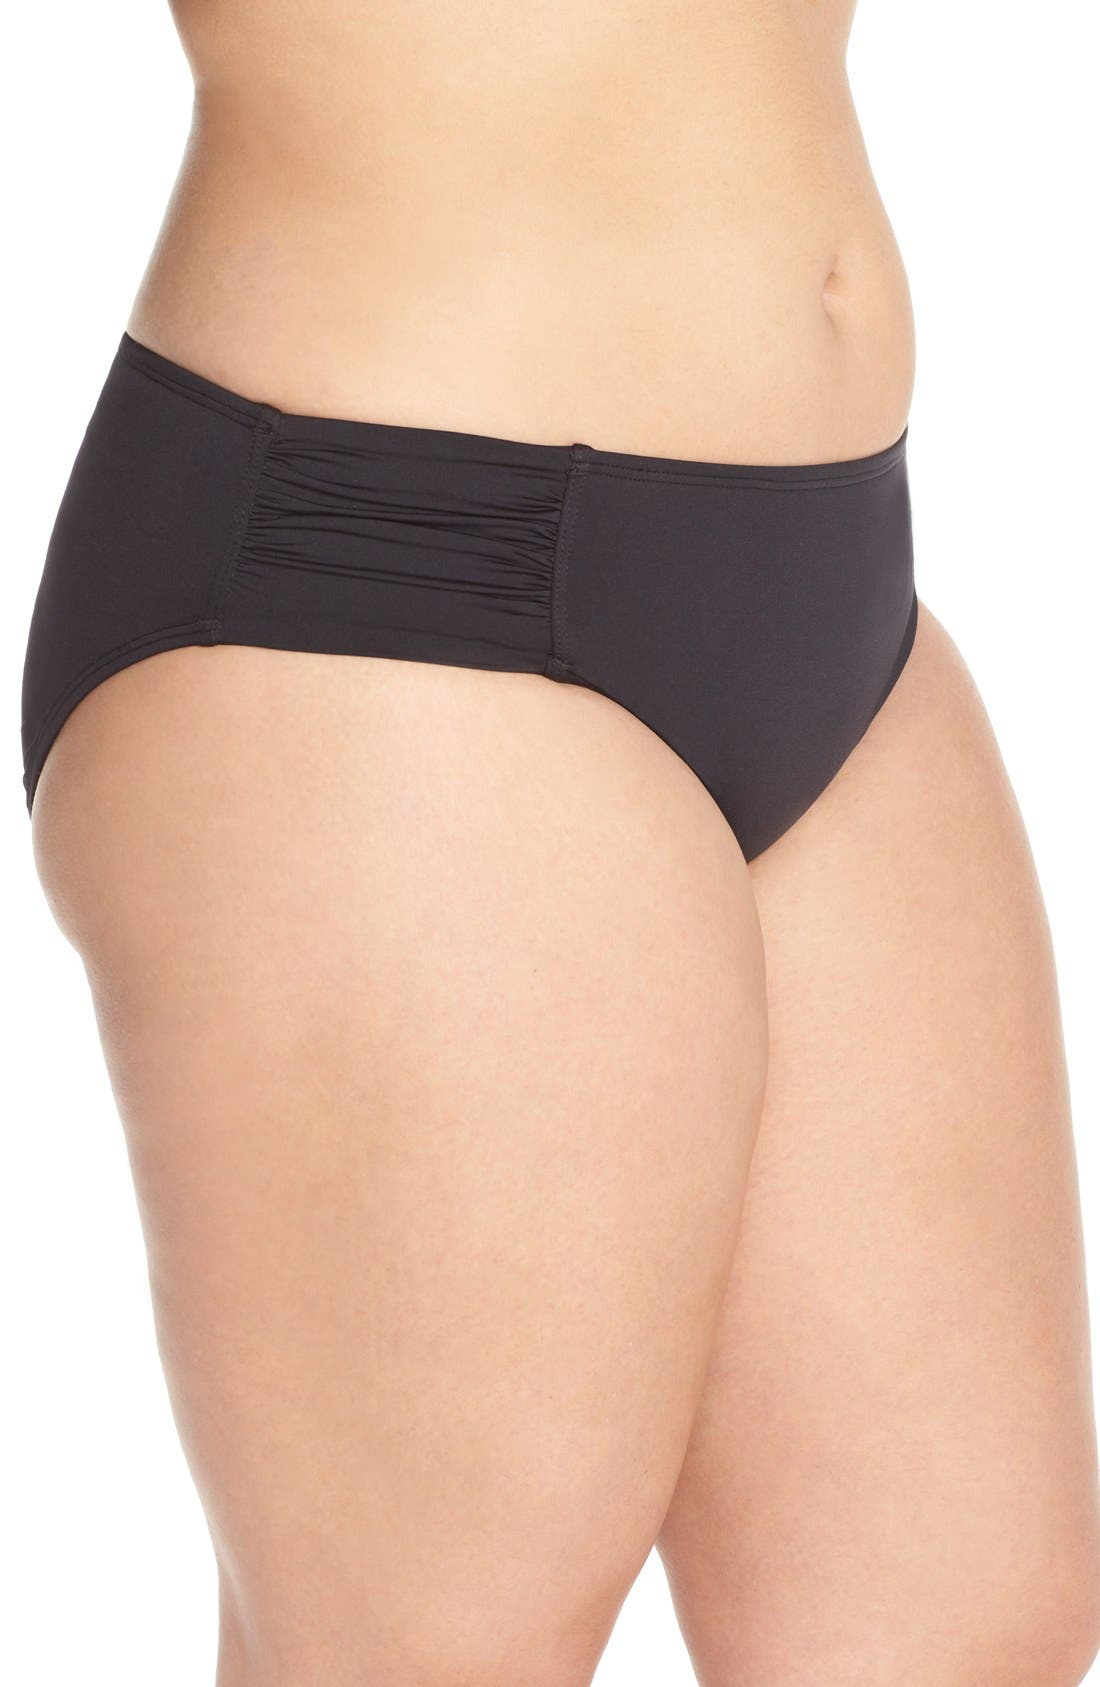 Alternate Image 3  - Tommy Bahama 'Pearl' Bikini Bottoms (Plus Size) (Nordstrom Exclusive)